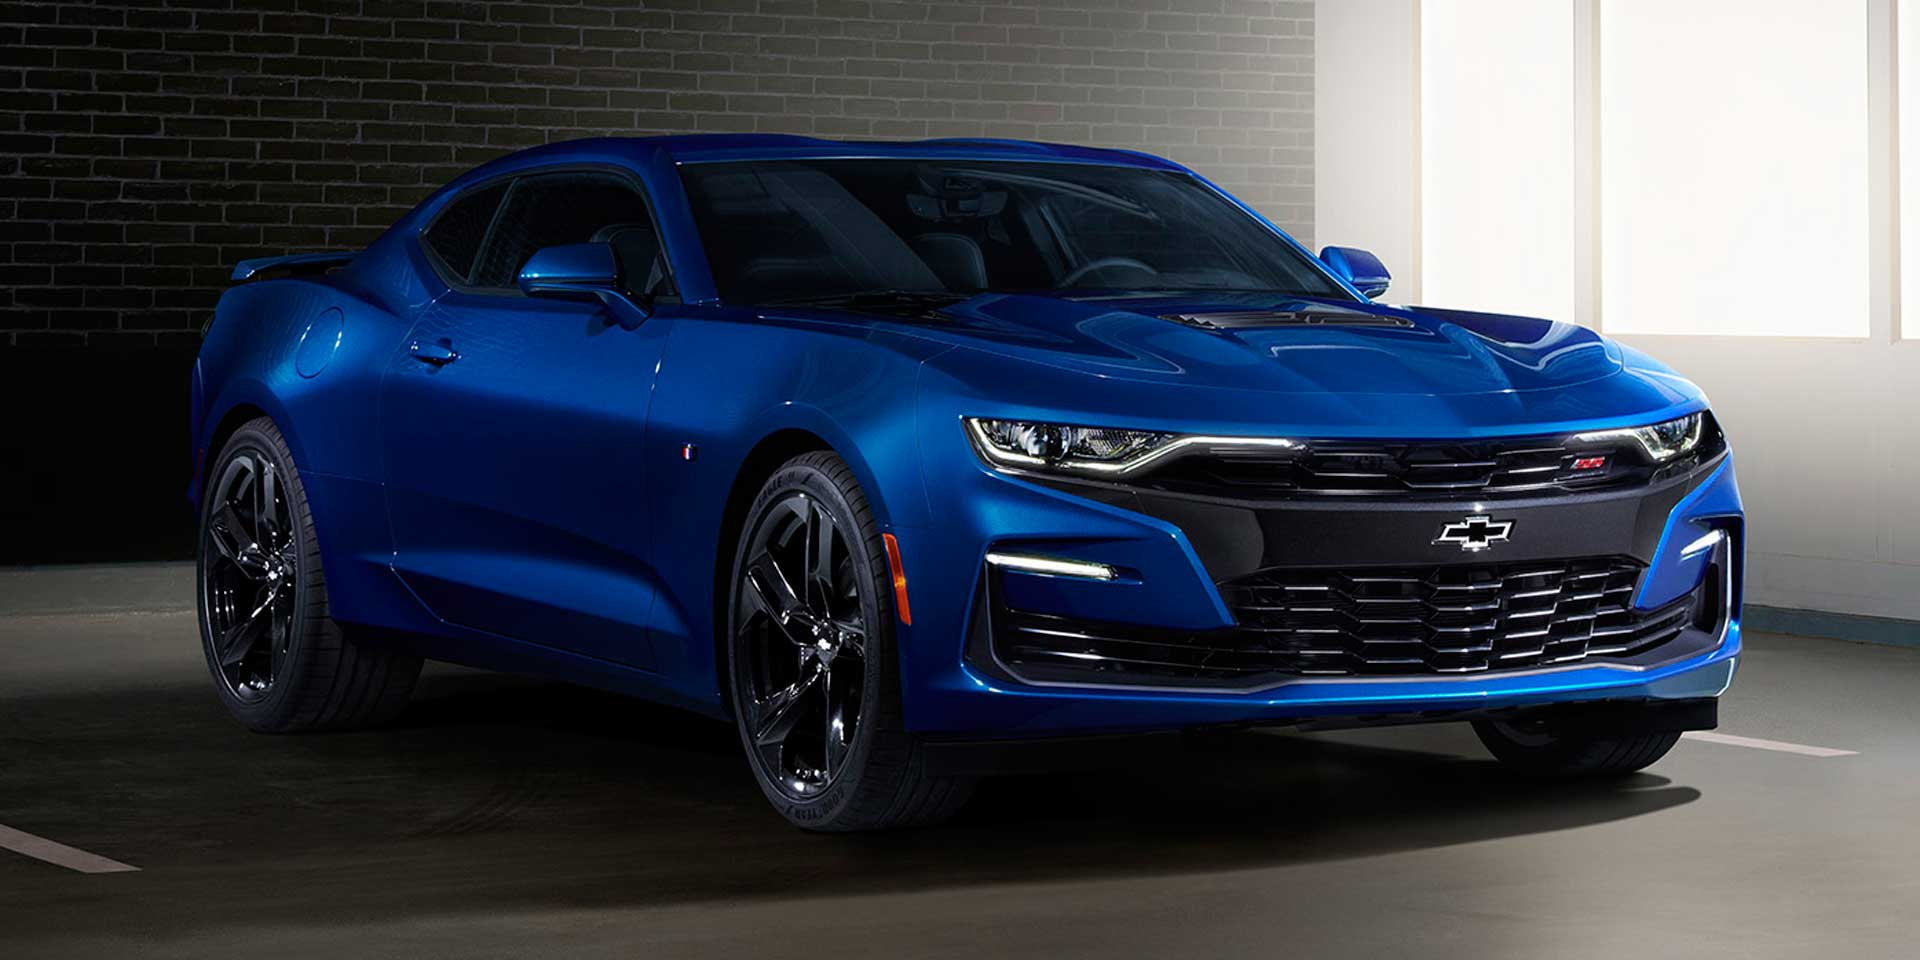 2019 - Chevrolet - Camaro - Vehicles on Display | Chicago ...